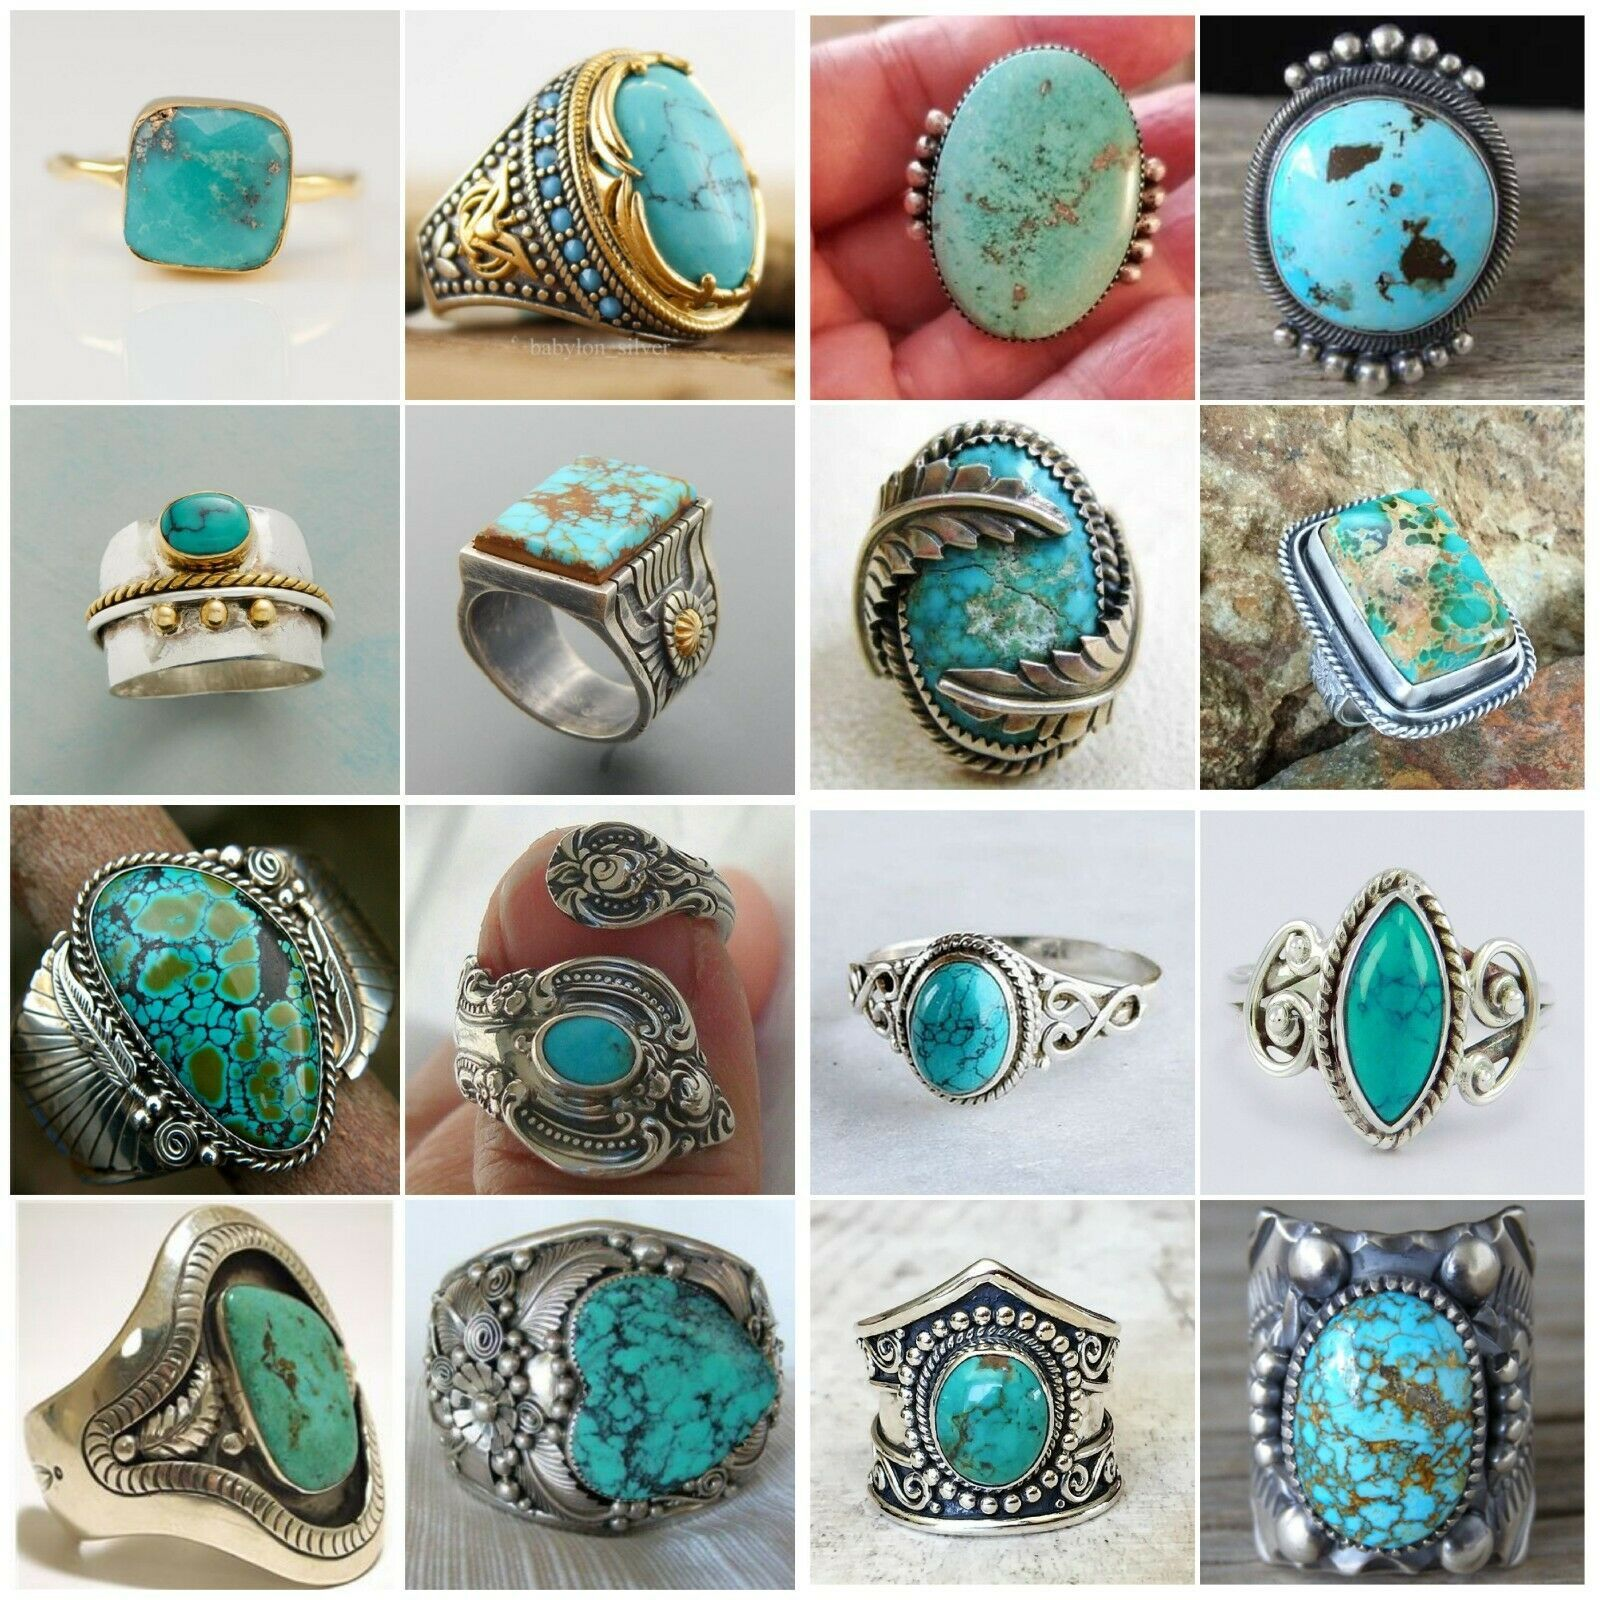 silver ring sterling silver ring jewelry gift men ring women ring Awesome Sterling Silver Turquoise Ring handmade jewelry